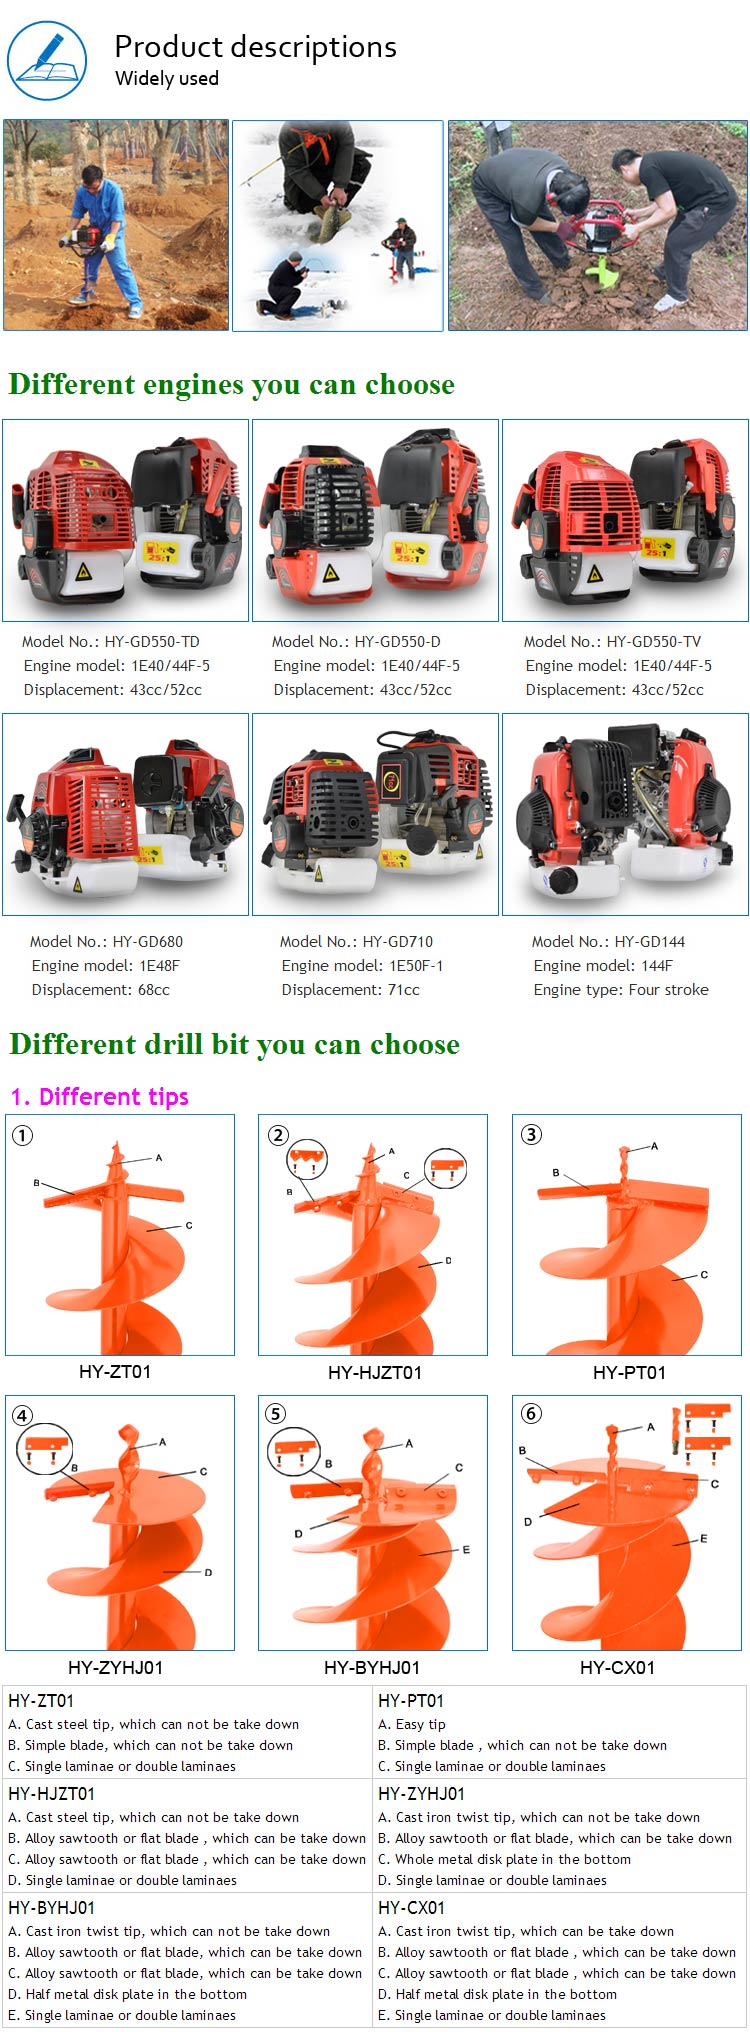 Double Person Operate Four Stroke Ground Drill for Digging Hole